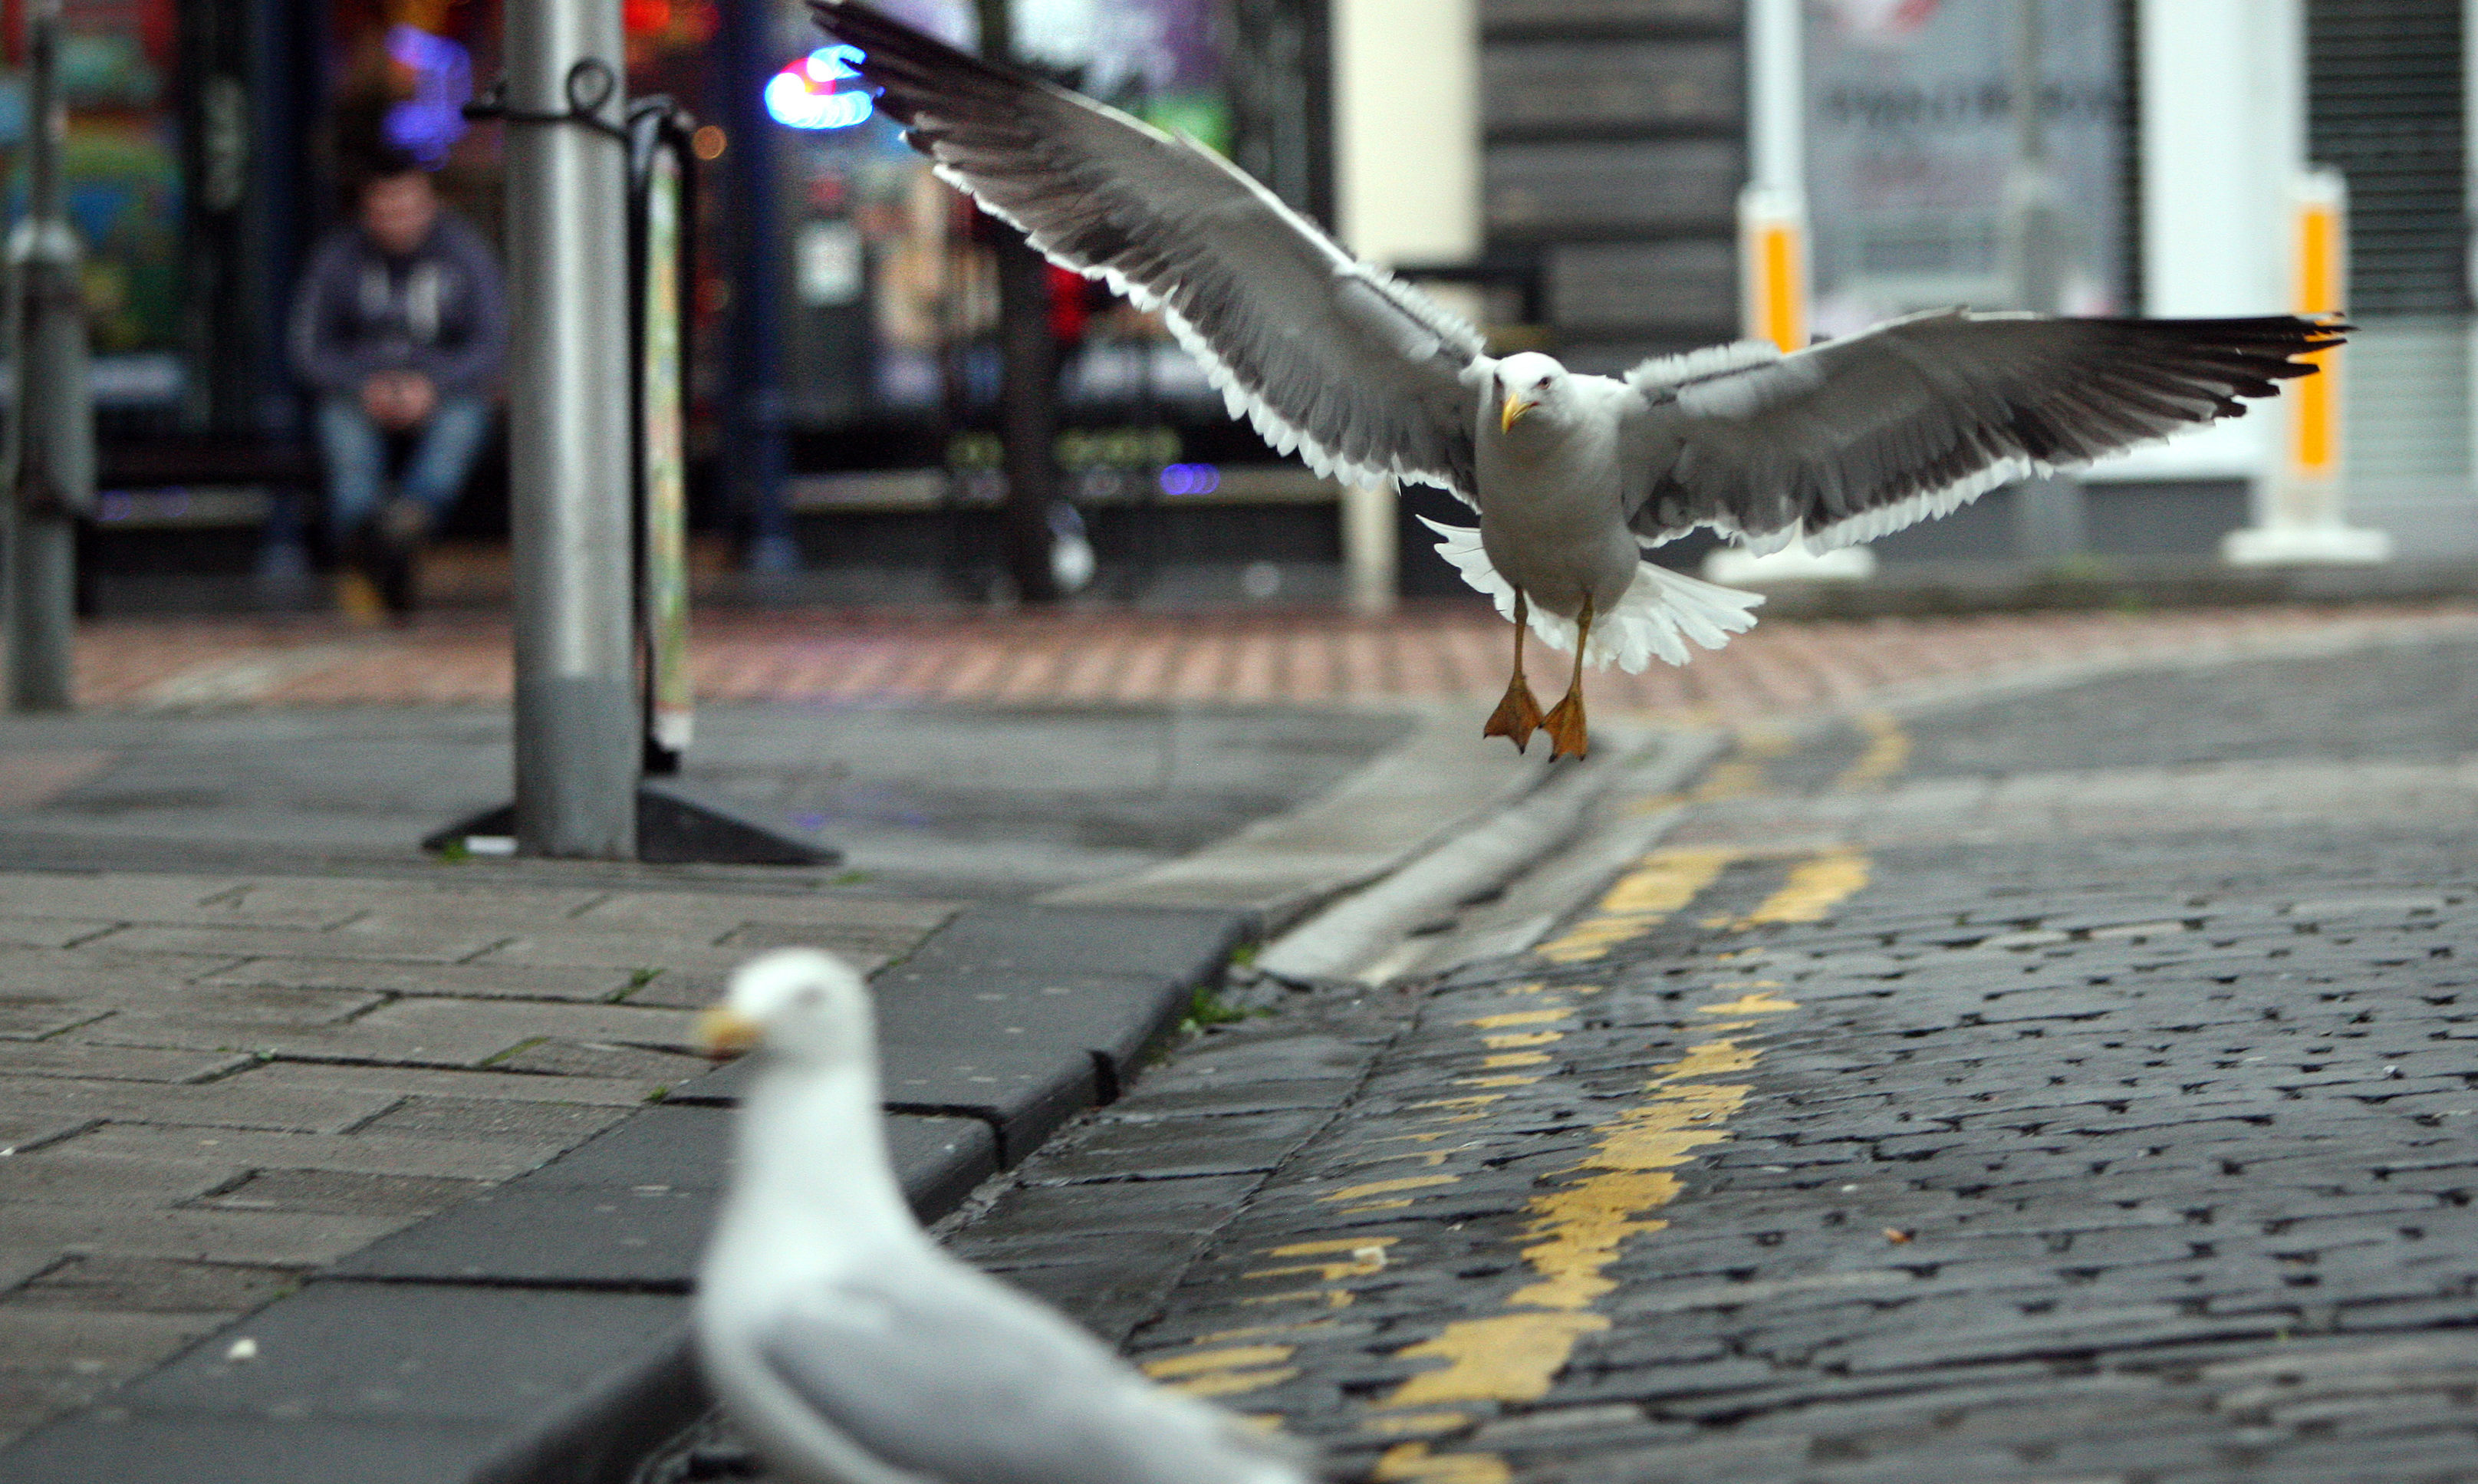 Gulls are becoming more prevalent in urban areas